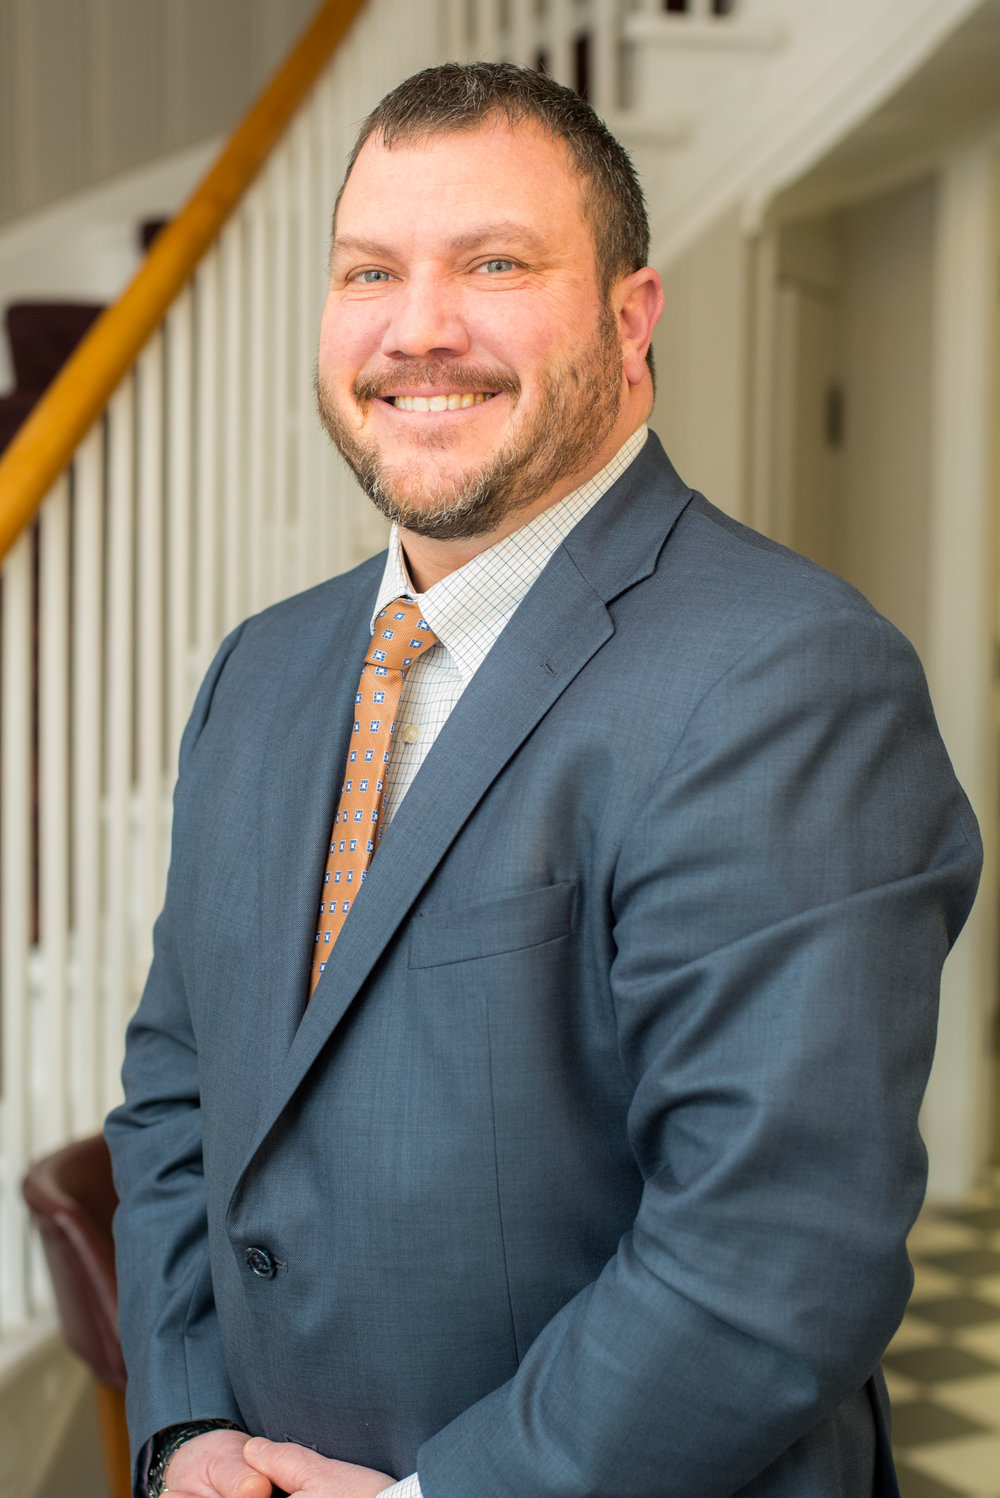 Chad Boreman - Executive Board Member  Partner - Boreman, Norton, Cook Wealth Partners